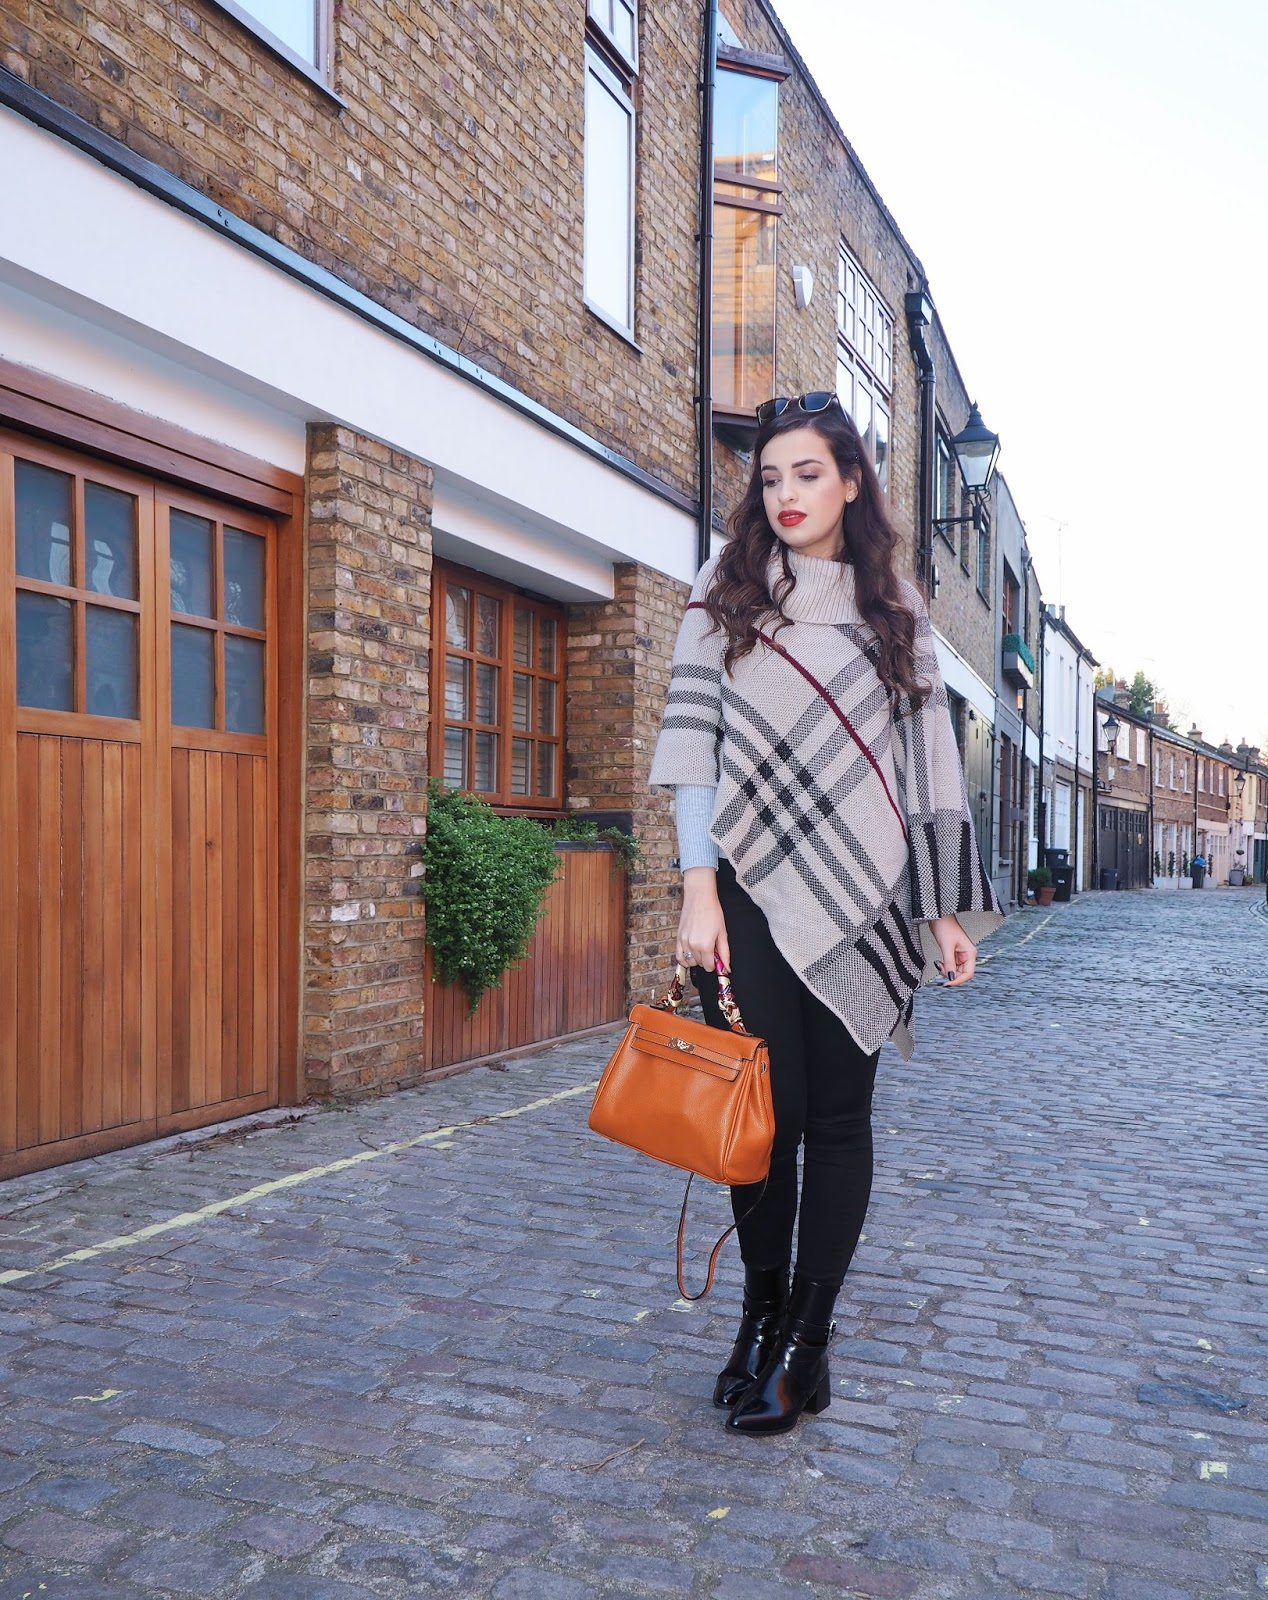 d1ba3f01973 Wrapping Up Warm With A Poncho & Must Have Ankle Boots | Pam Scalfi♥